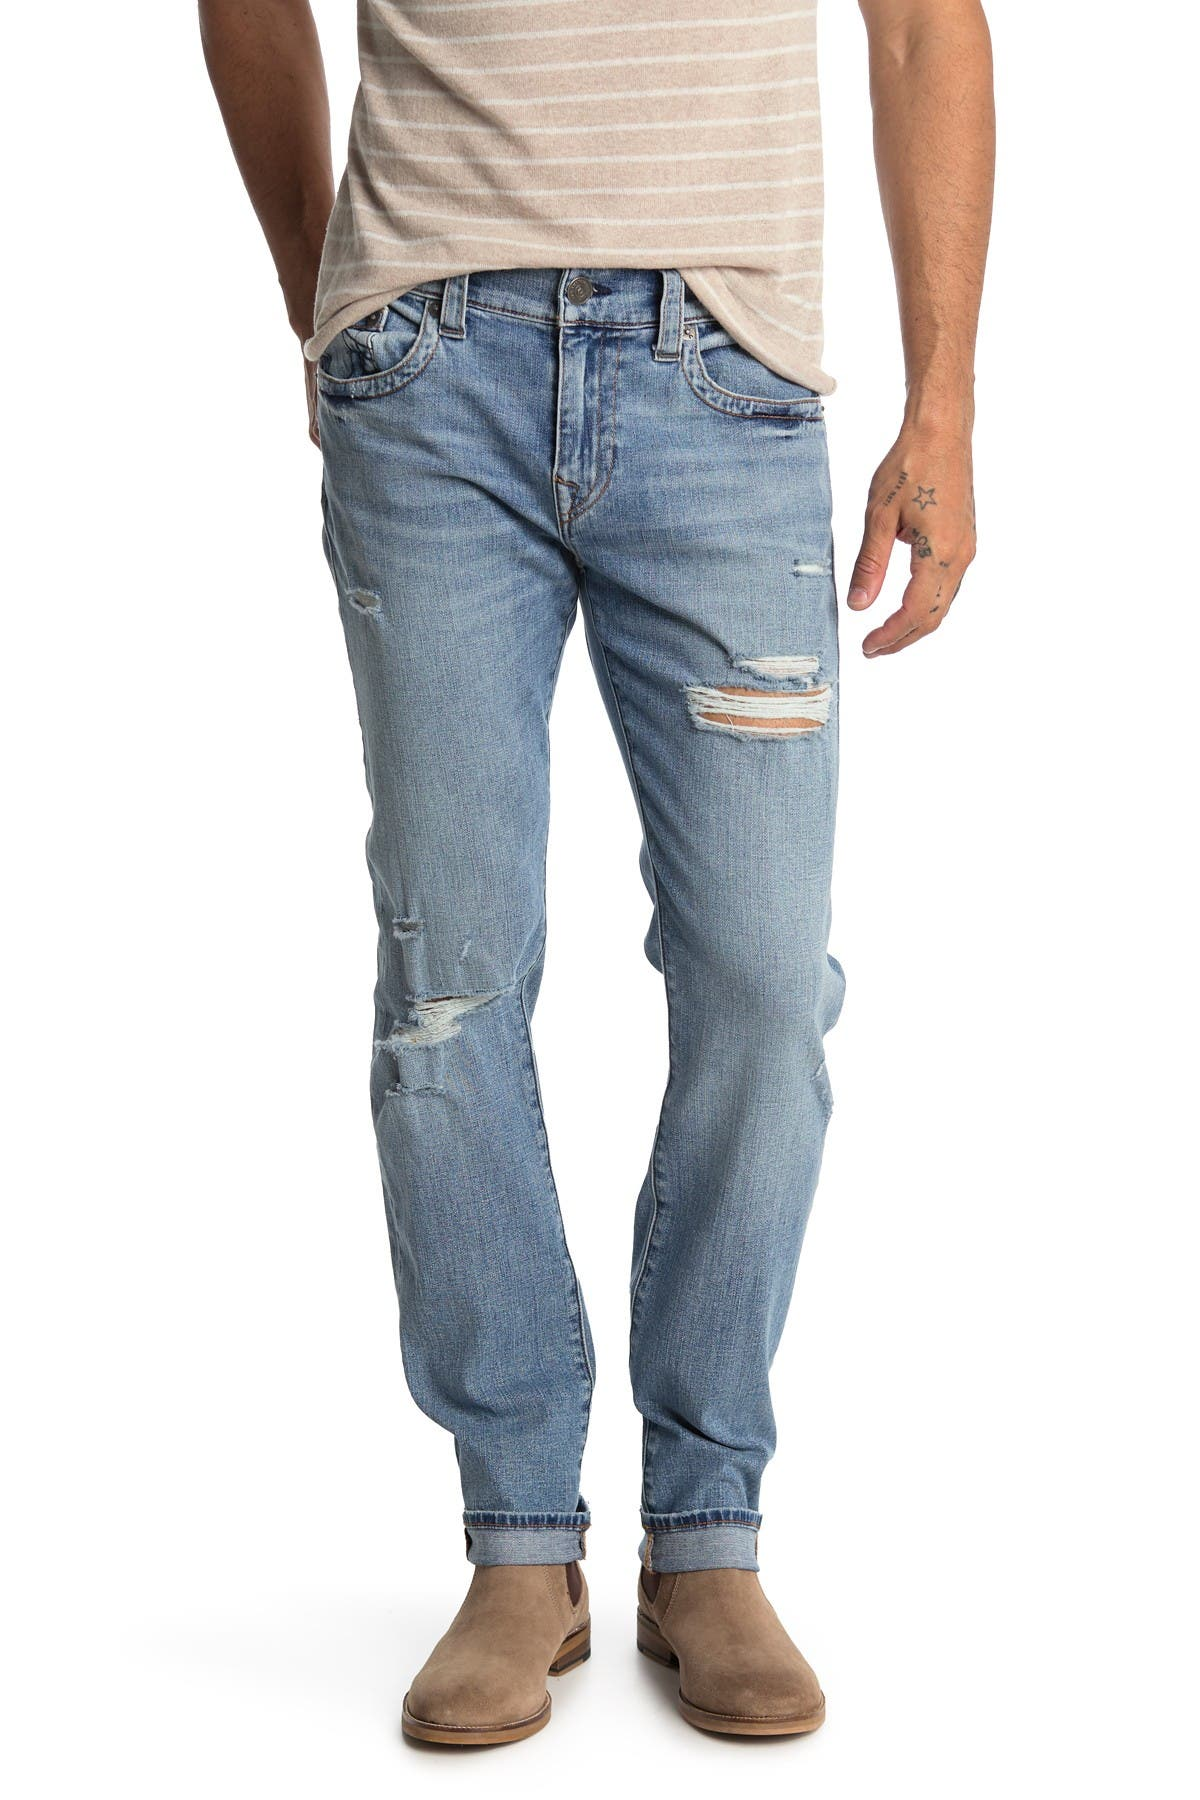 Image of True Religion Rocco No Flap Straight Leg Jeans